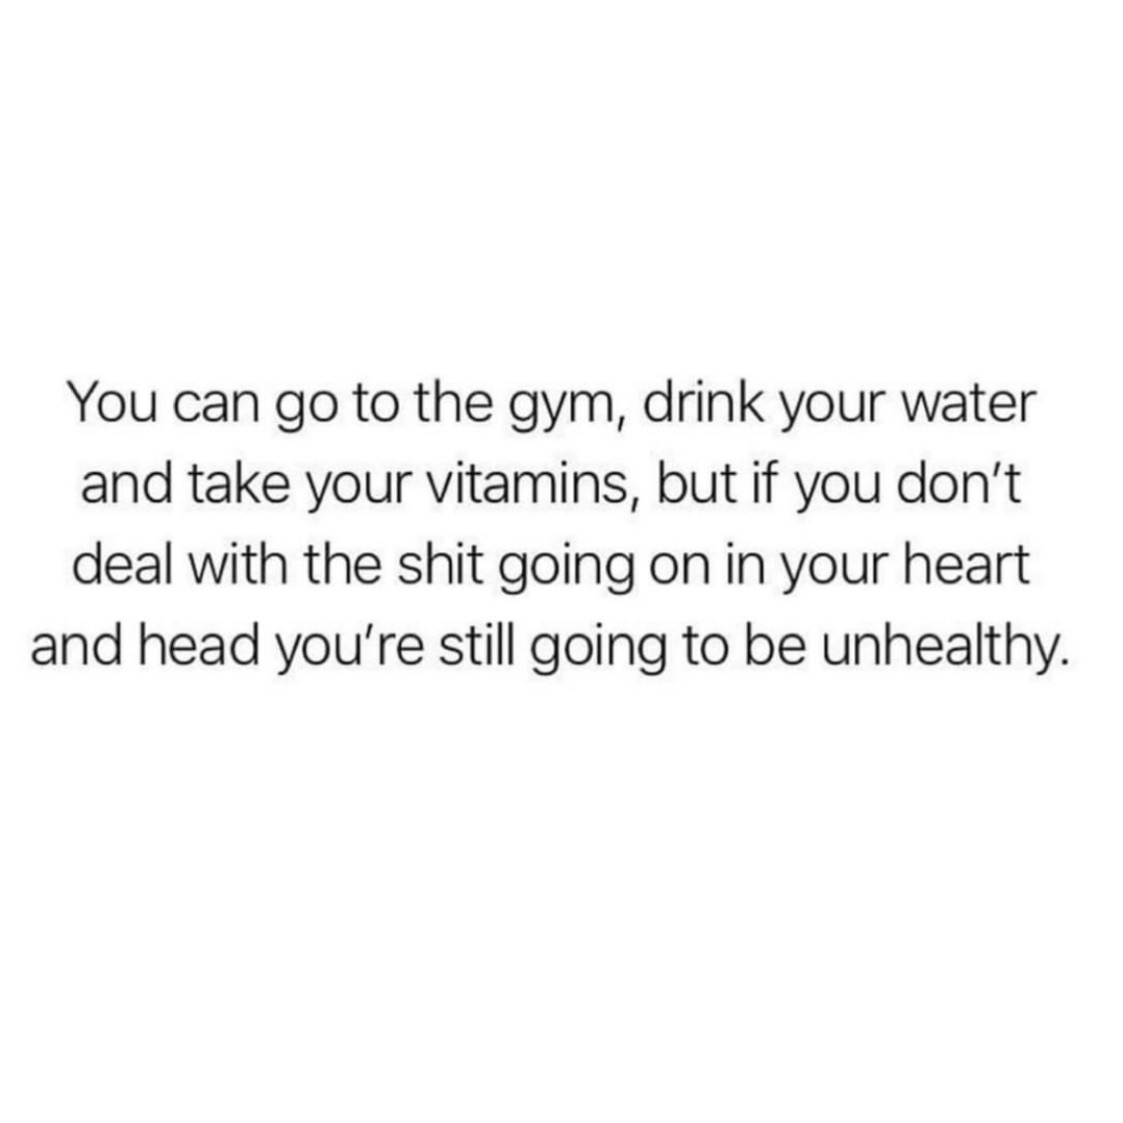 self care, love yourself, be happy and heart